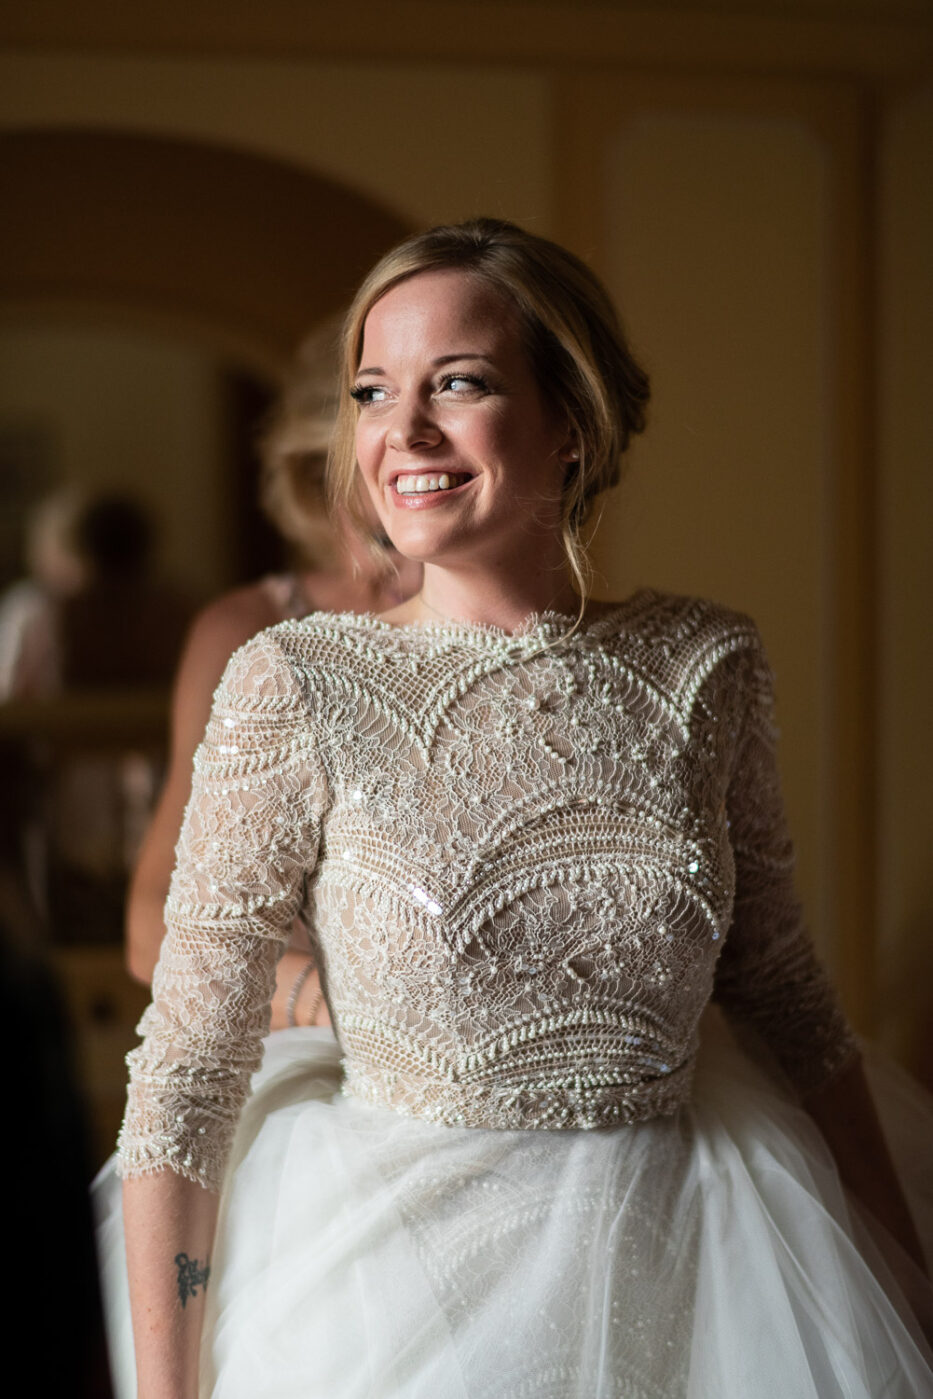 Stunning and smiling blonde bride in her wedding gown at Villa Pizzo Lake Como Italy by Luxury wedding photographer in Italy Francesco Bognin